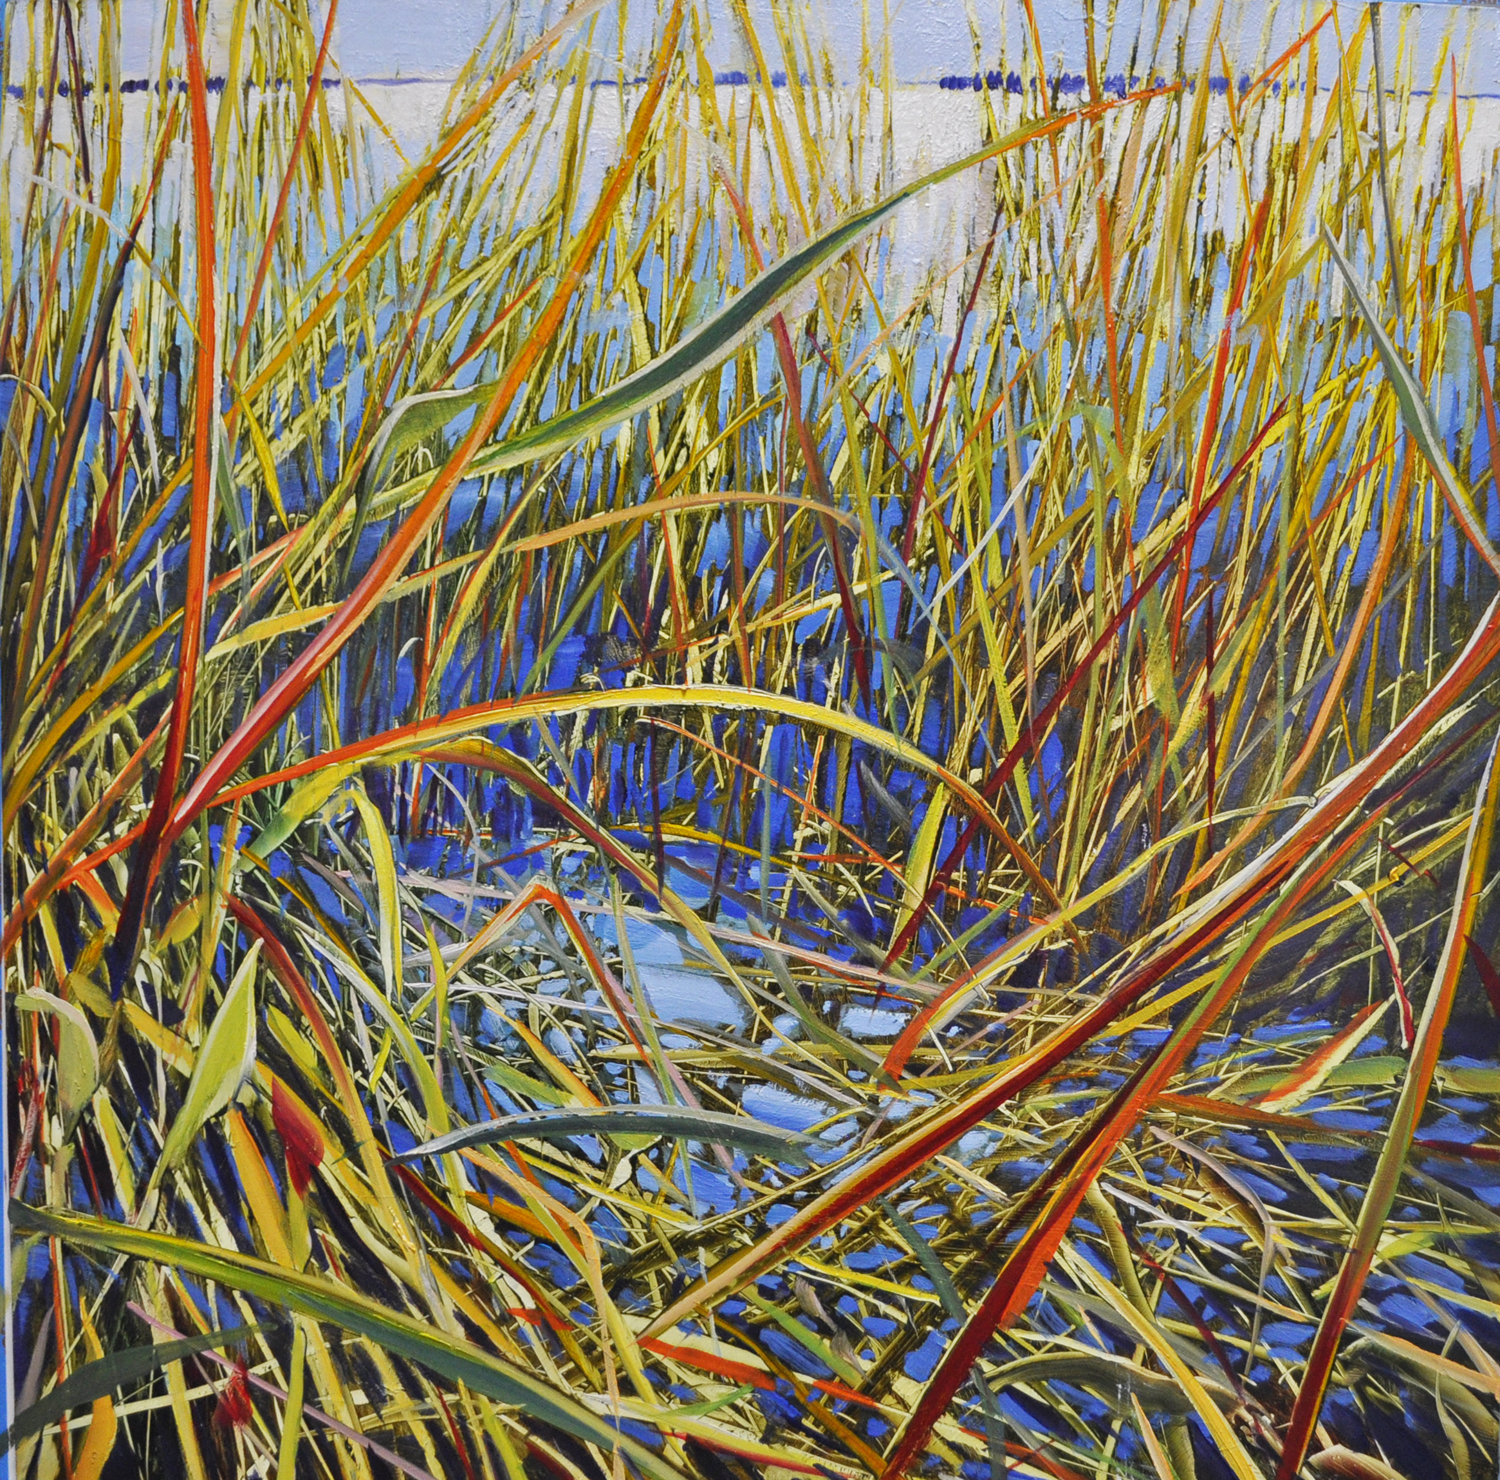 """Intimate Sea Grass"", oil aluminum, 18x18, $2,200"